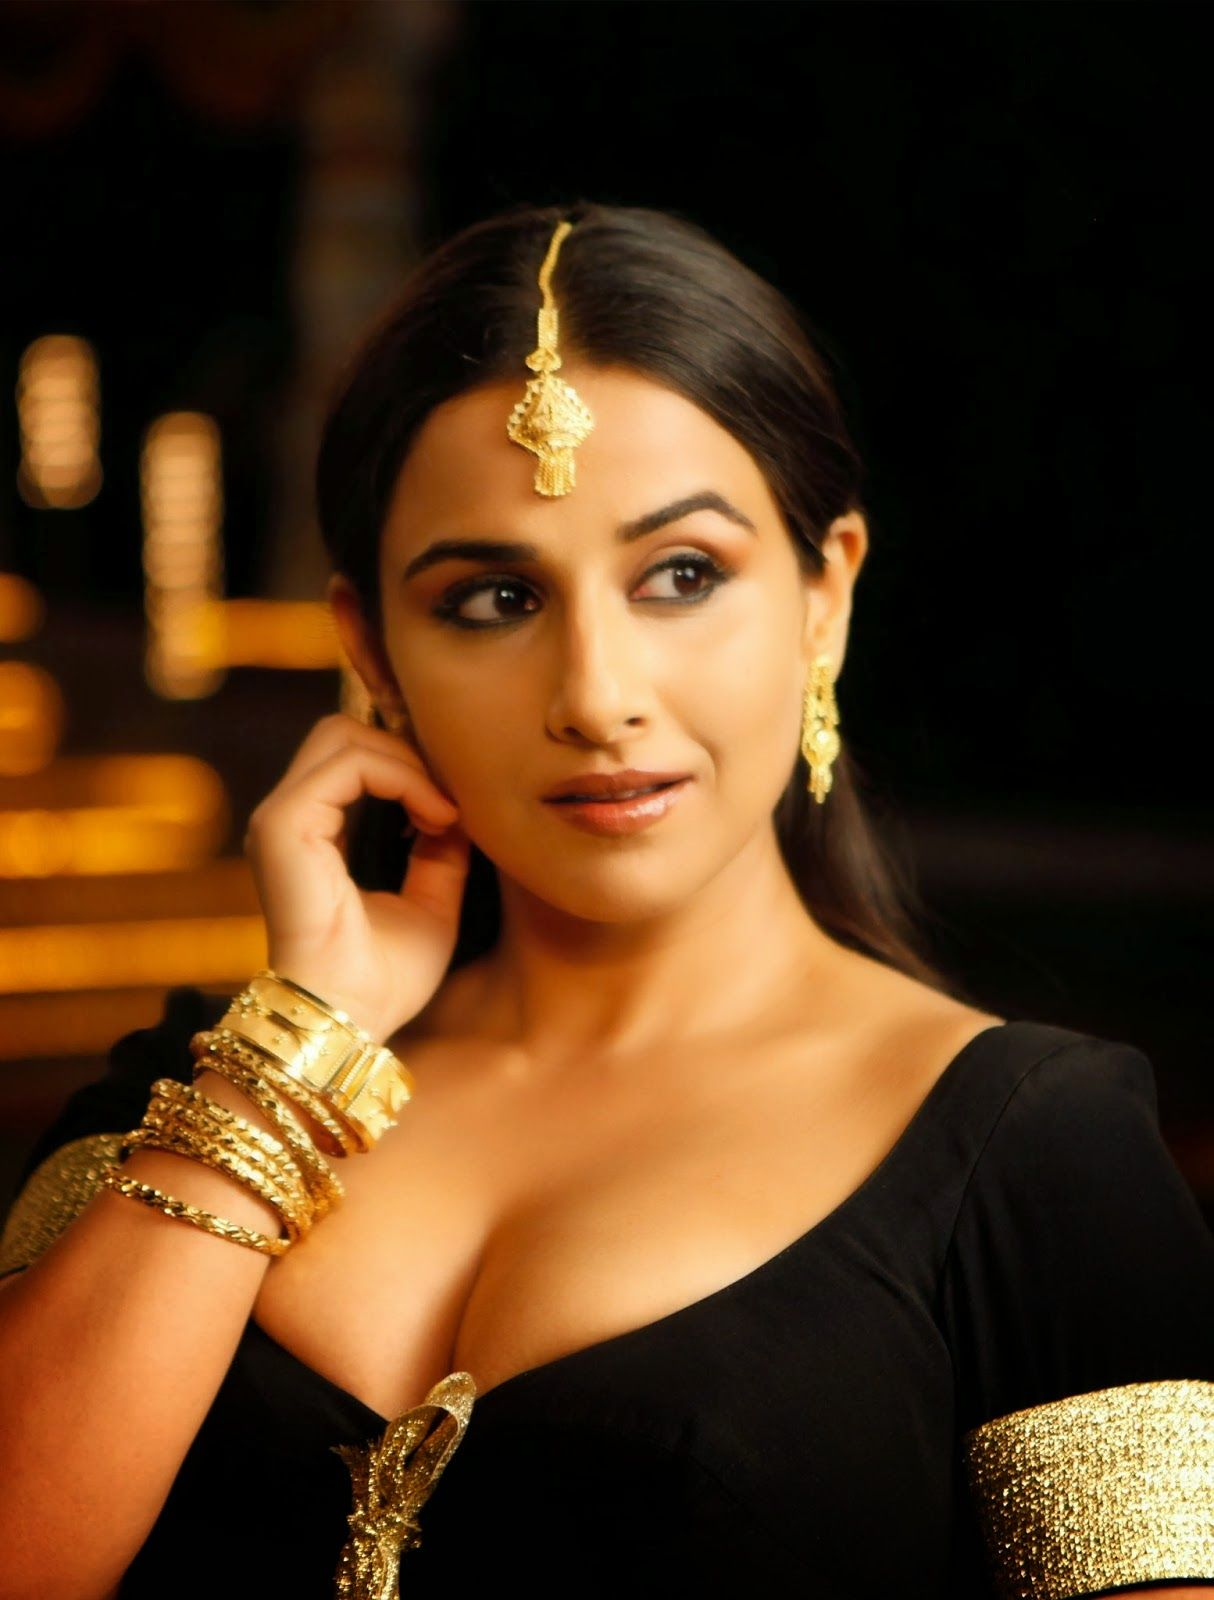 bollywood heroines wallpapers collection | hd wallpapers | pinterest